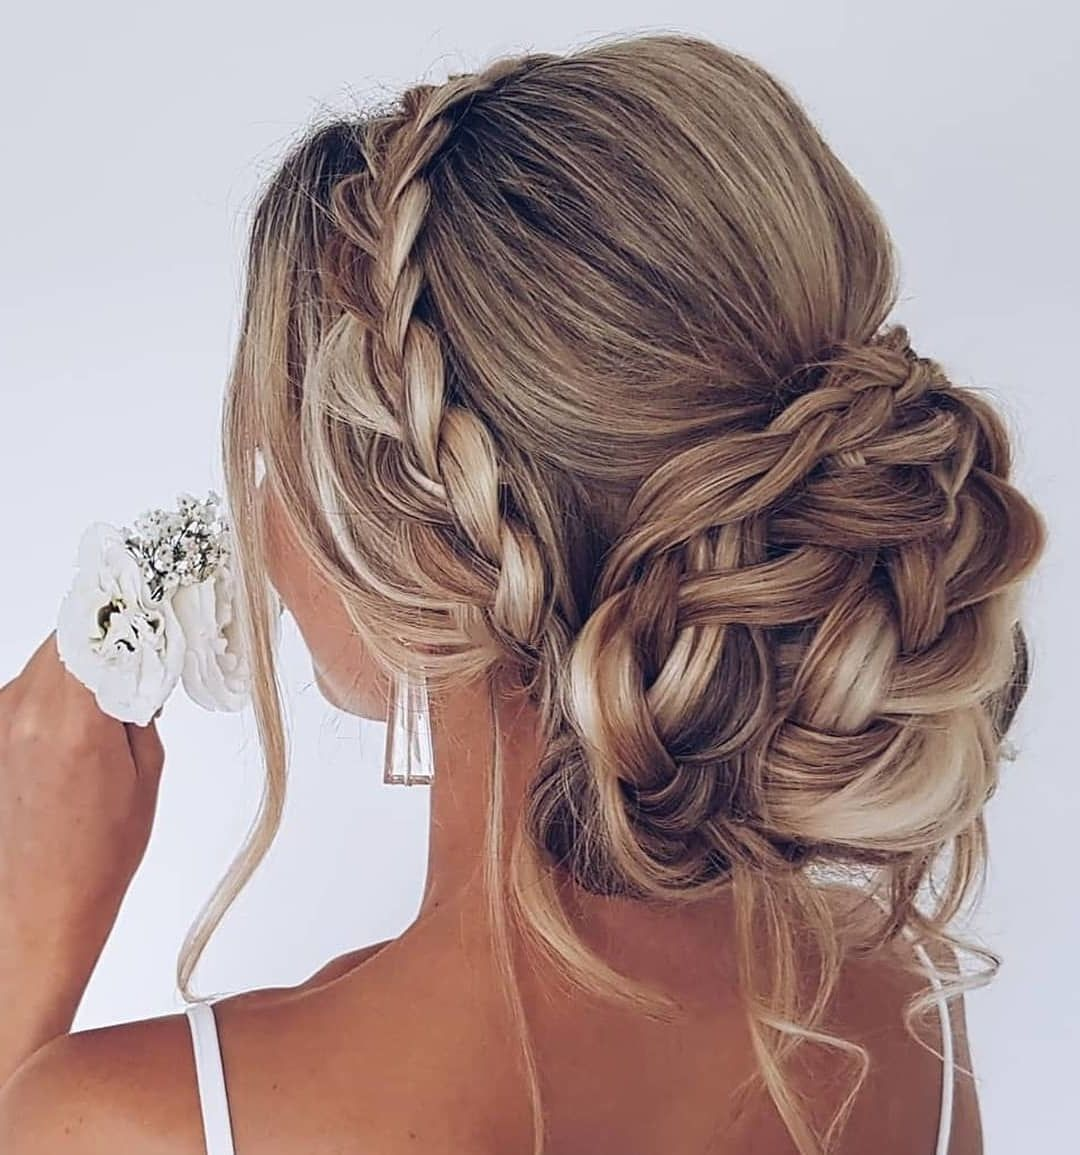 25 Updo Wedding Hairstyles For Long Hair Best Wedding Style Long Hair Styles Long Hair Wedding Styles Hair Styles